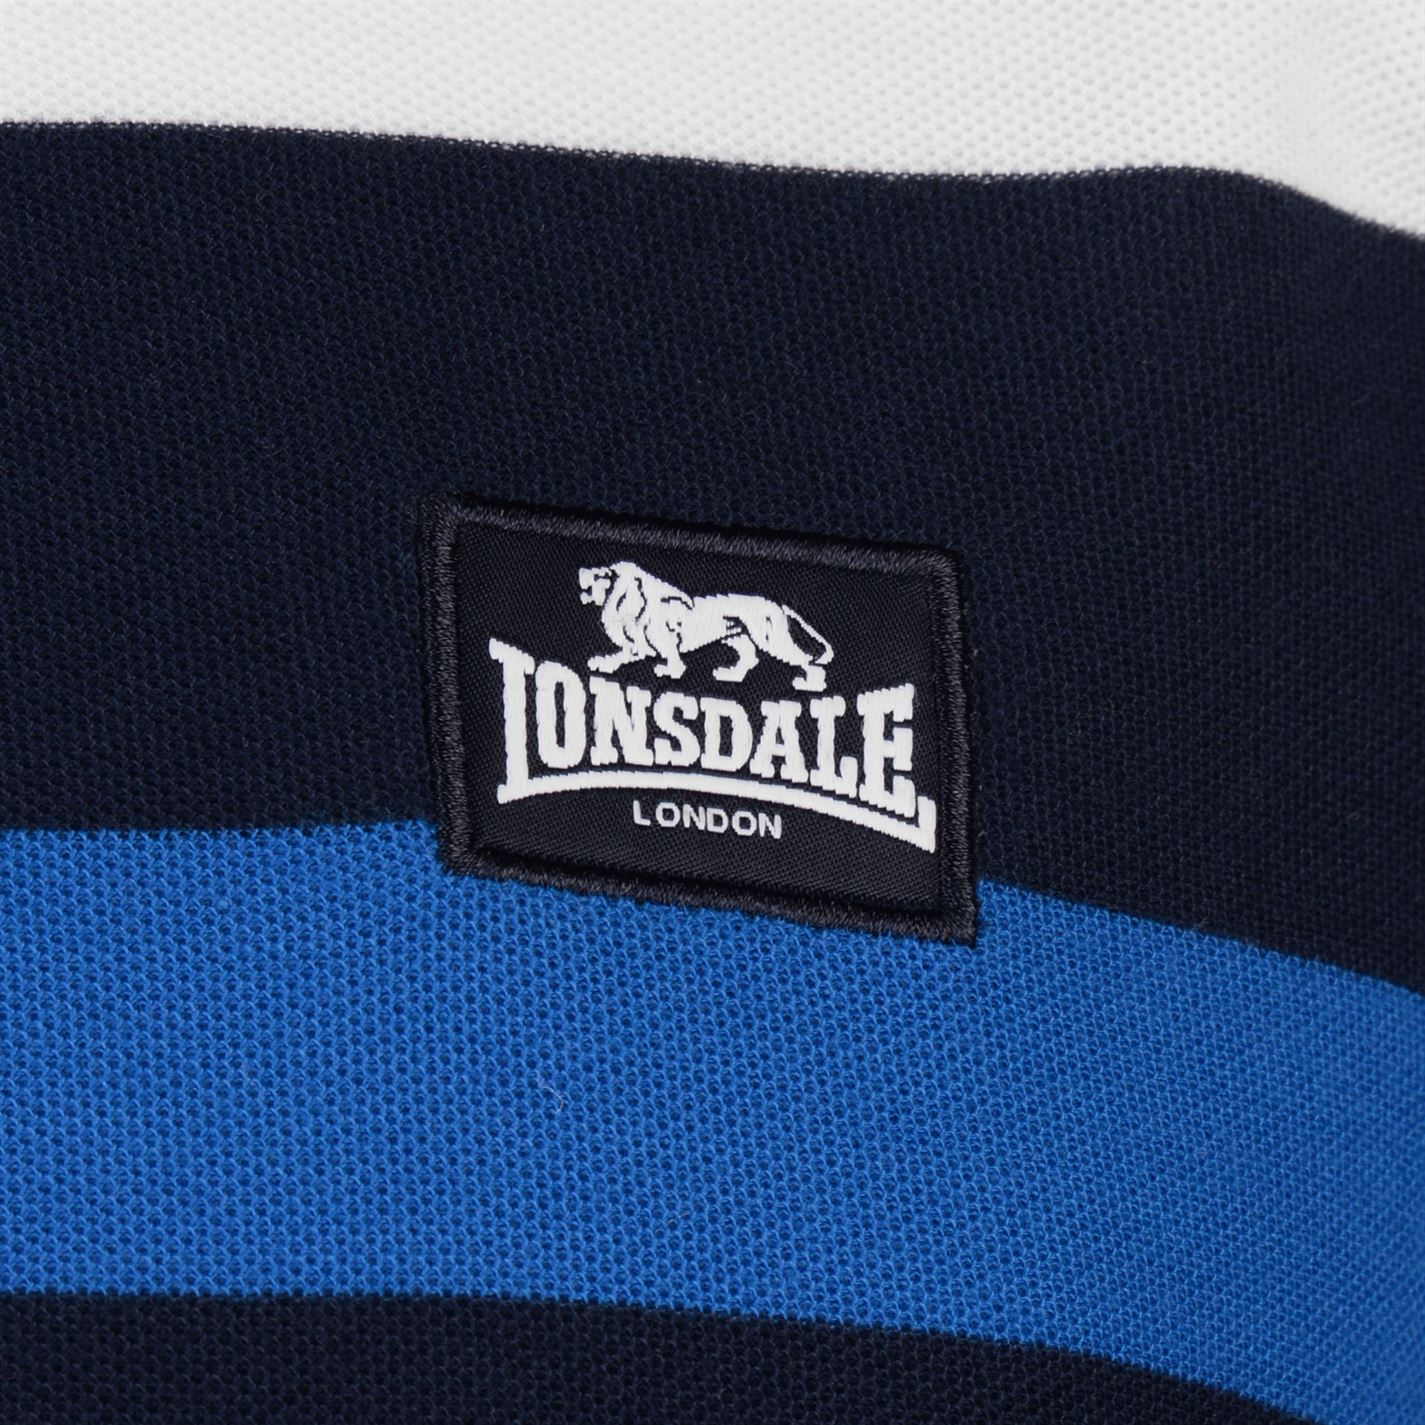 Lonsdale-Mens-Stripe-Polo-Shirt-Classic-Fit-Tee-Top-Short-Sleeve-Button-Placket thumbnail 21